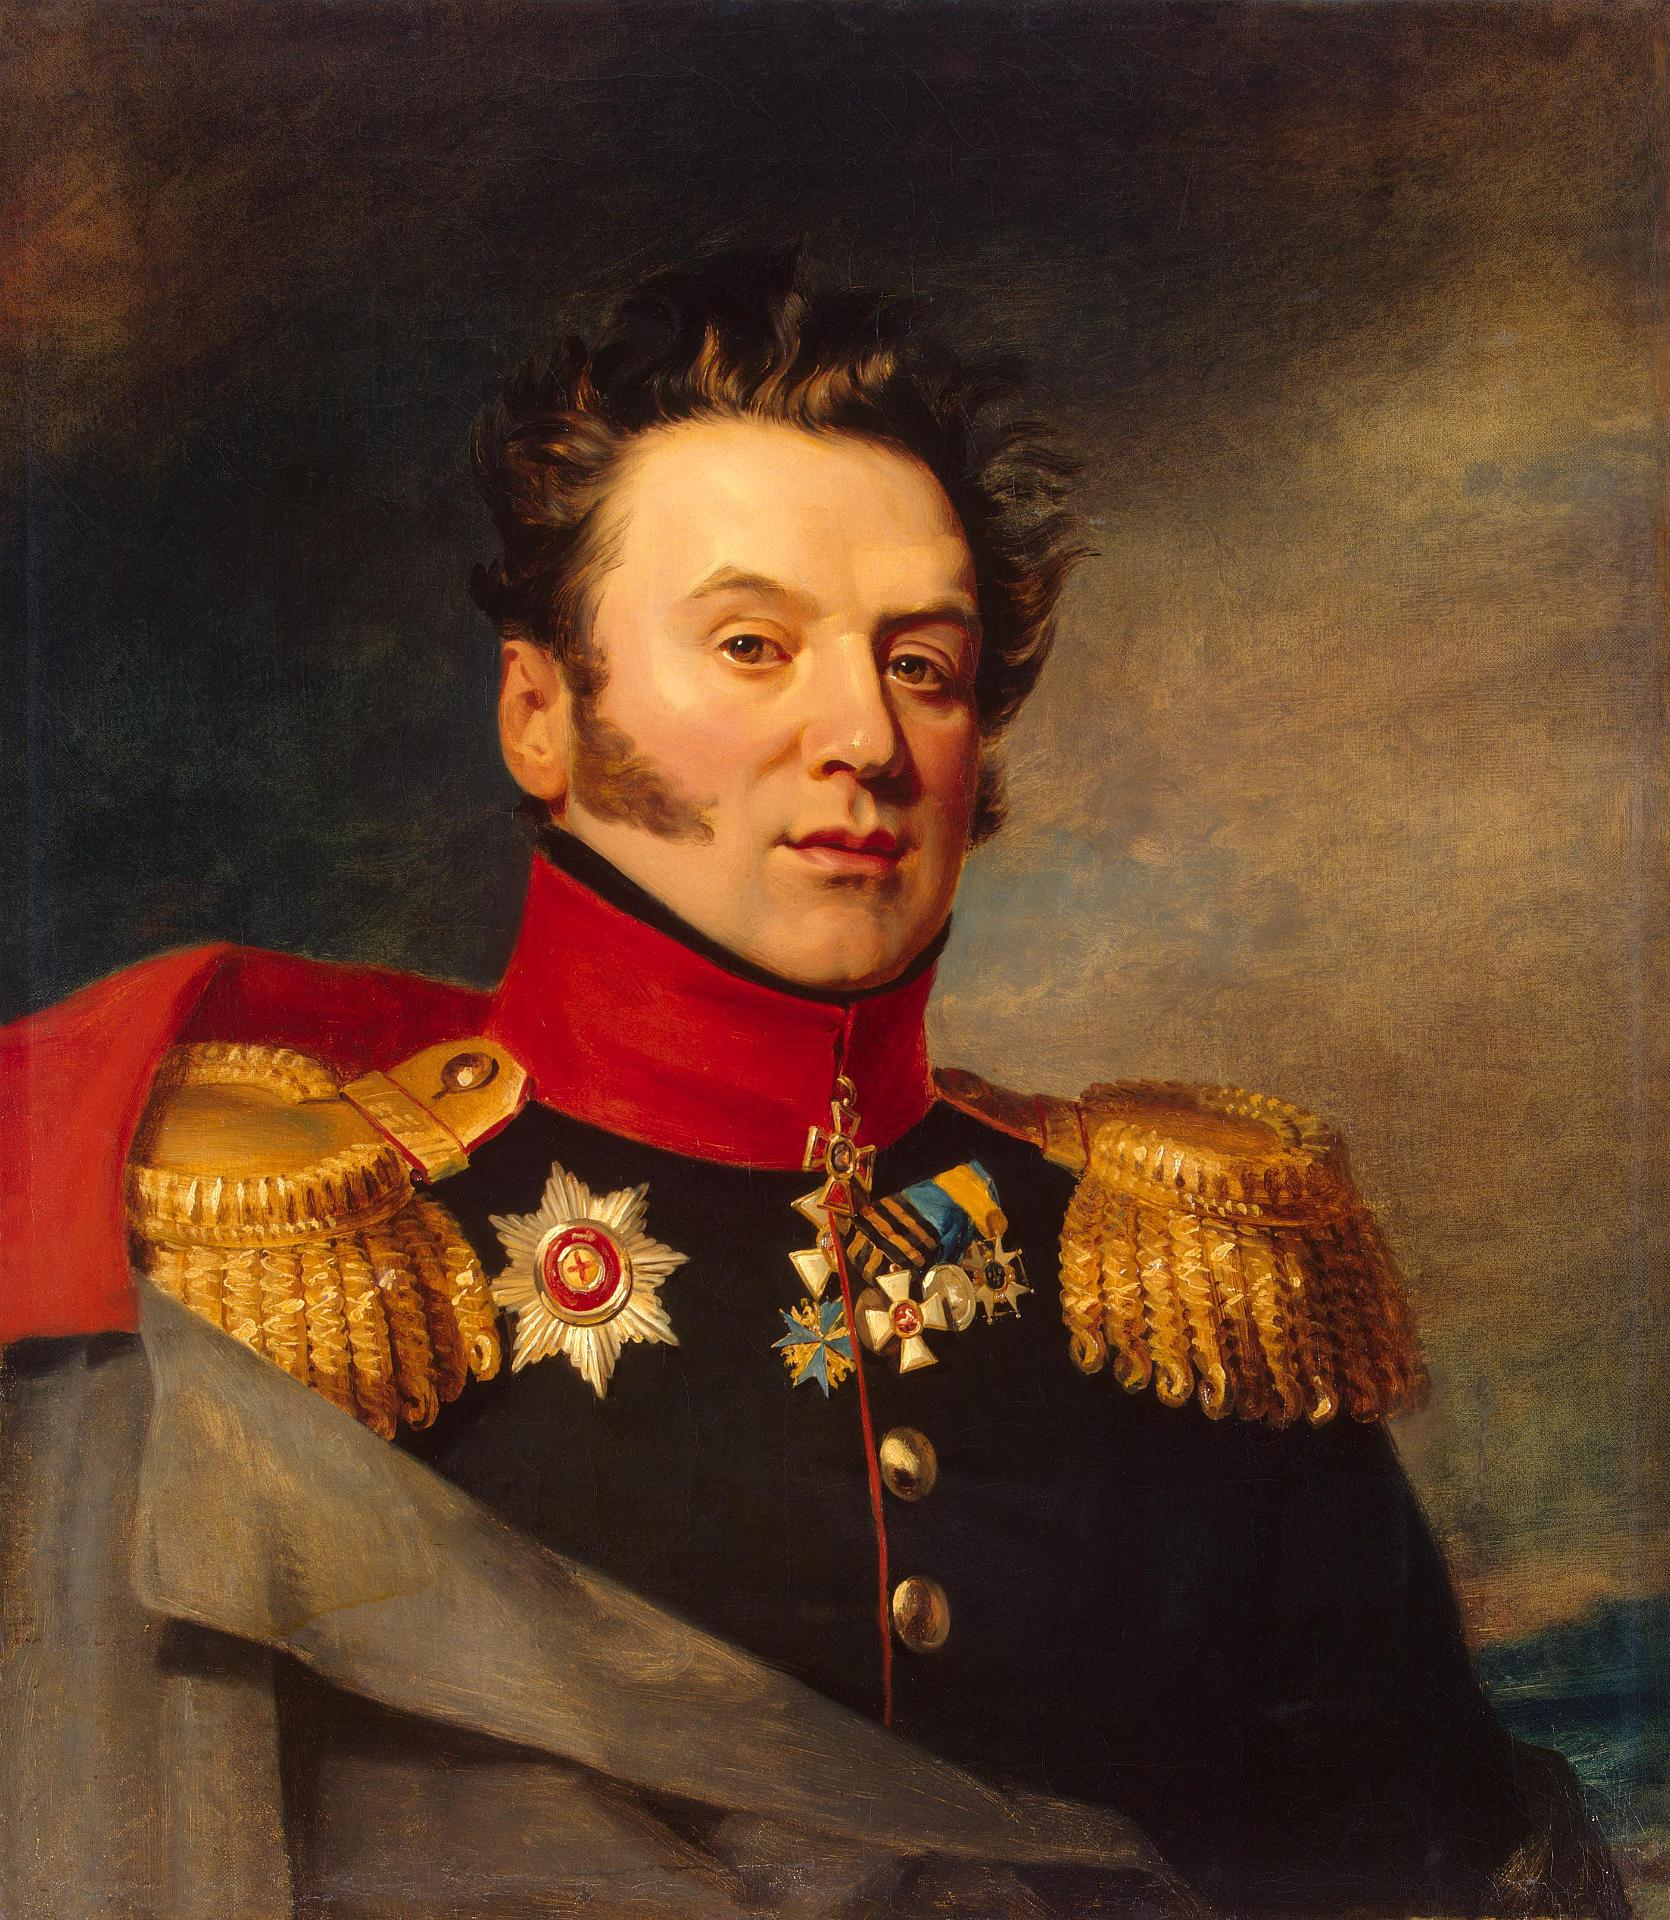 https://upload.wikimedia.org/wikipedia/commons/6/69/Poltoratsky_Konstantin_Markovich.jpg